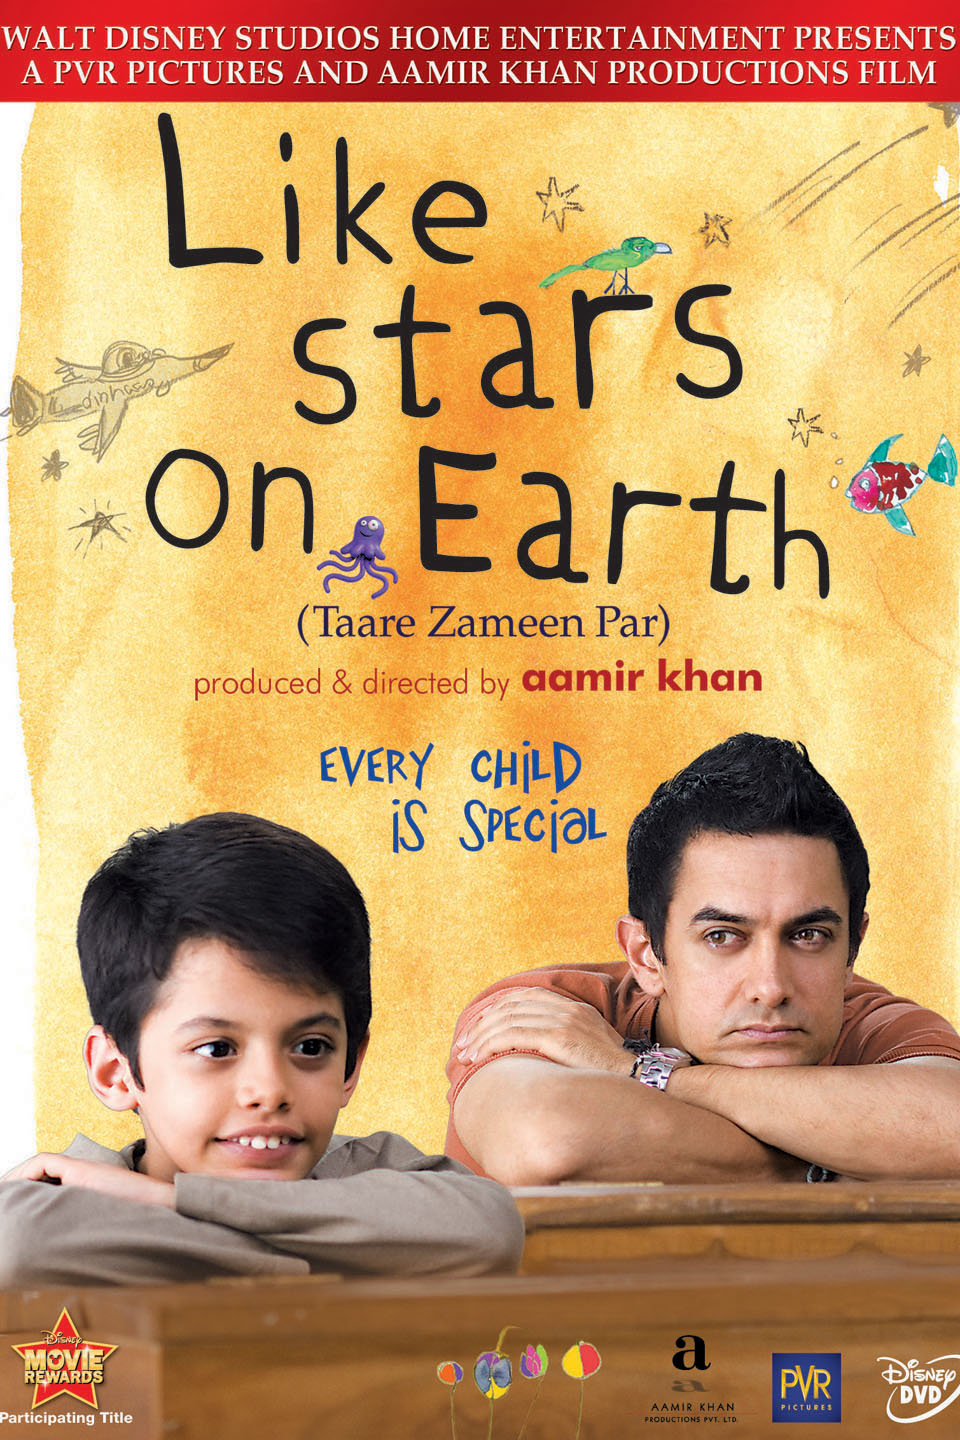 Taare Zameen Par (2007) Hindi 720p HEVC BluRay x265 790 MB